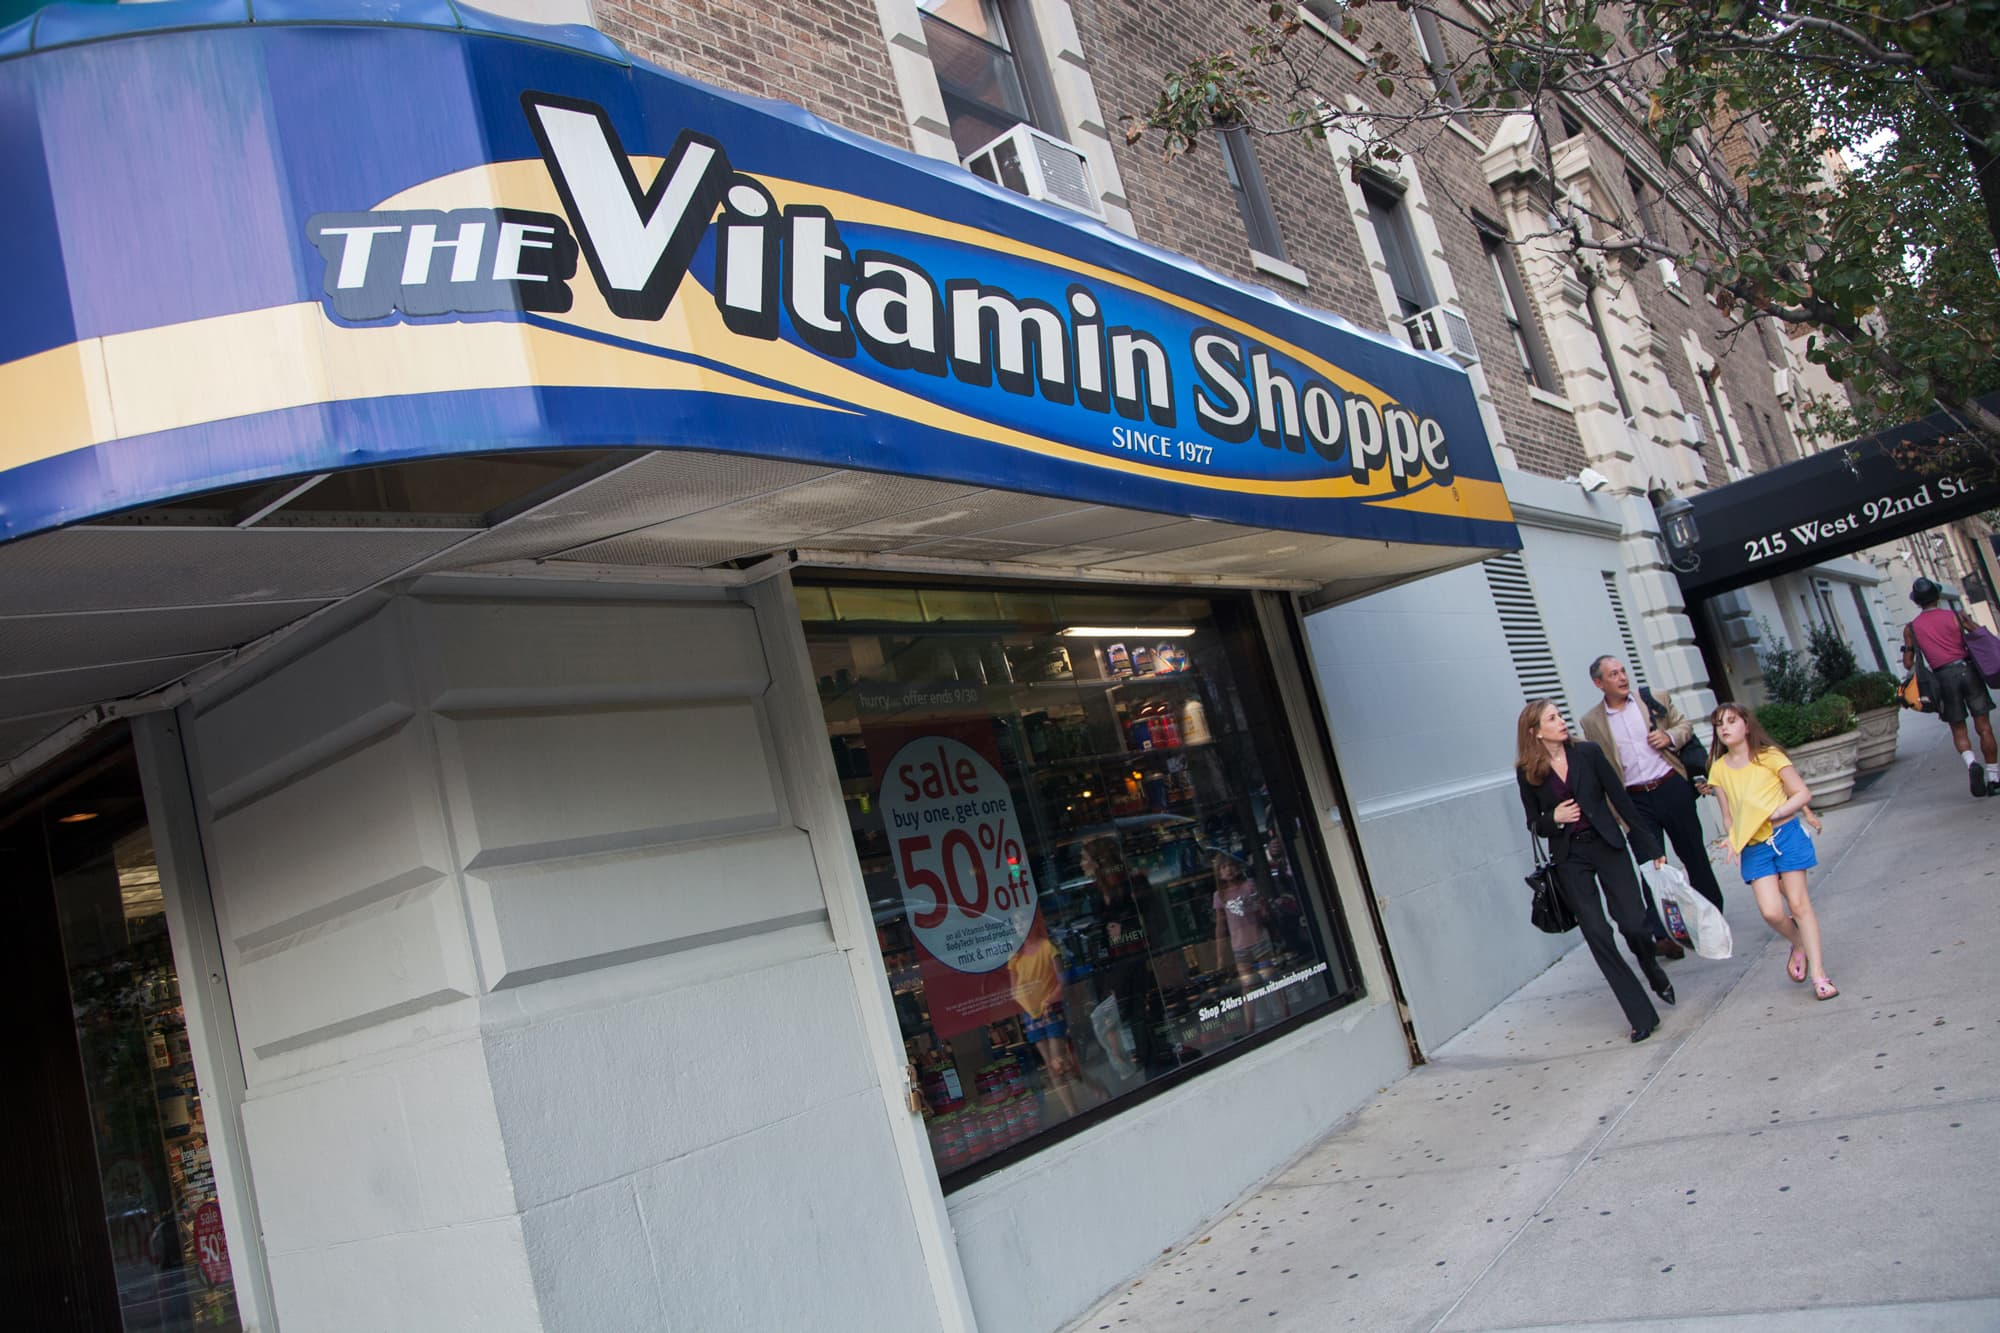 Vitamin Shoppe to sell edible CBD drops as interest in